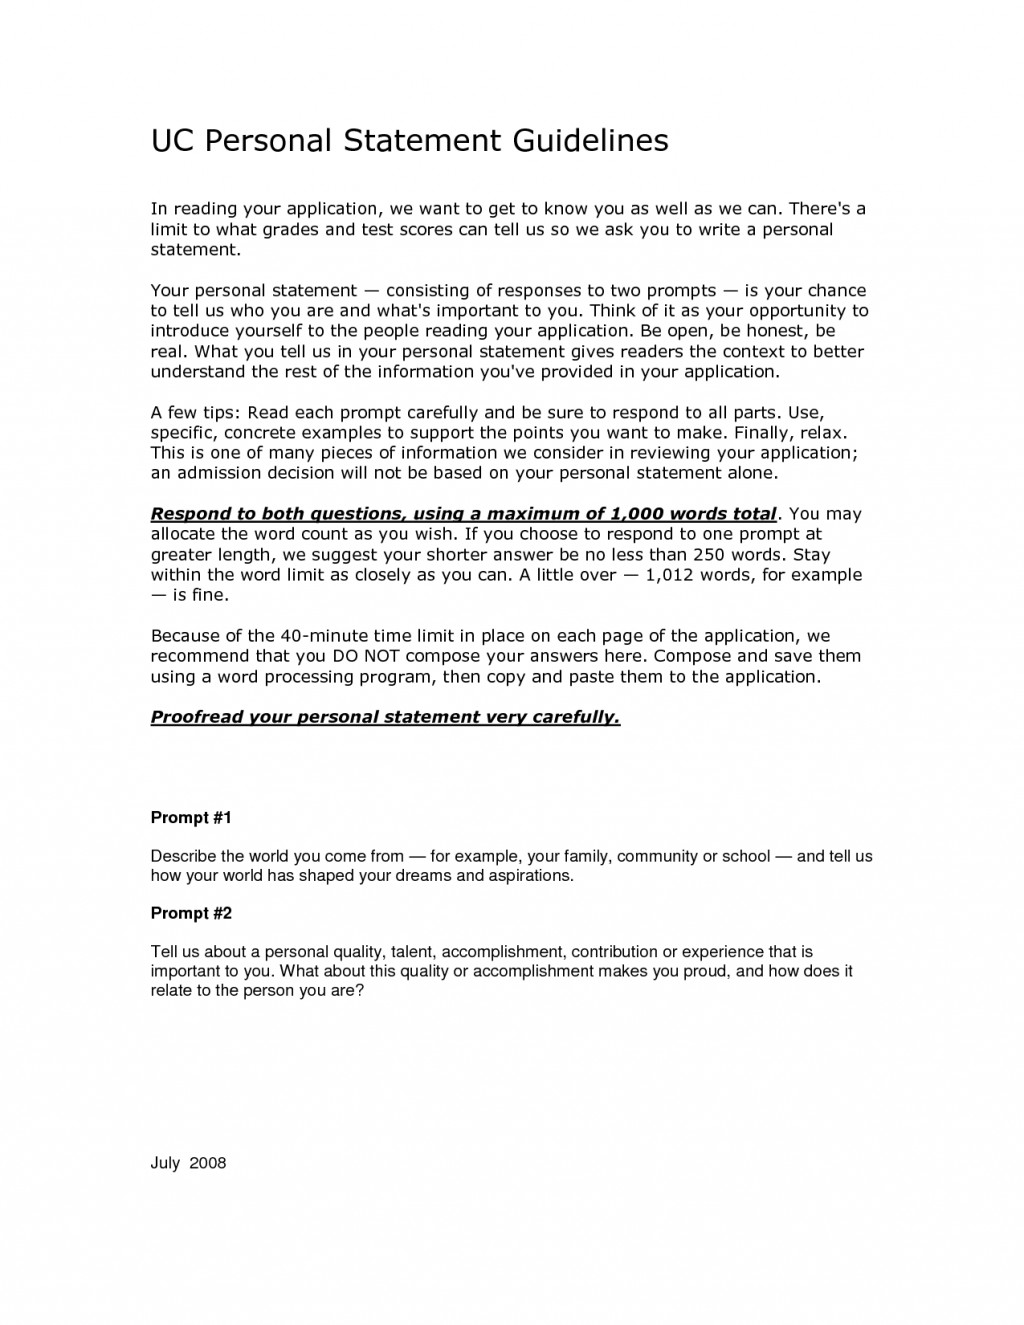 005 Uc Application Essay Examples Personal Statement College Admission Prompts Of Statements Template Cm3 App Prompt Ucf Texas Admissions Example Frightening Essays Tips Large